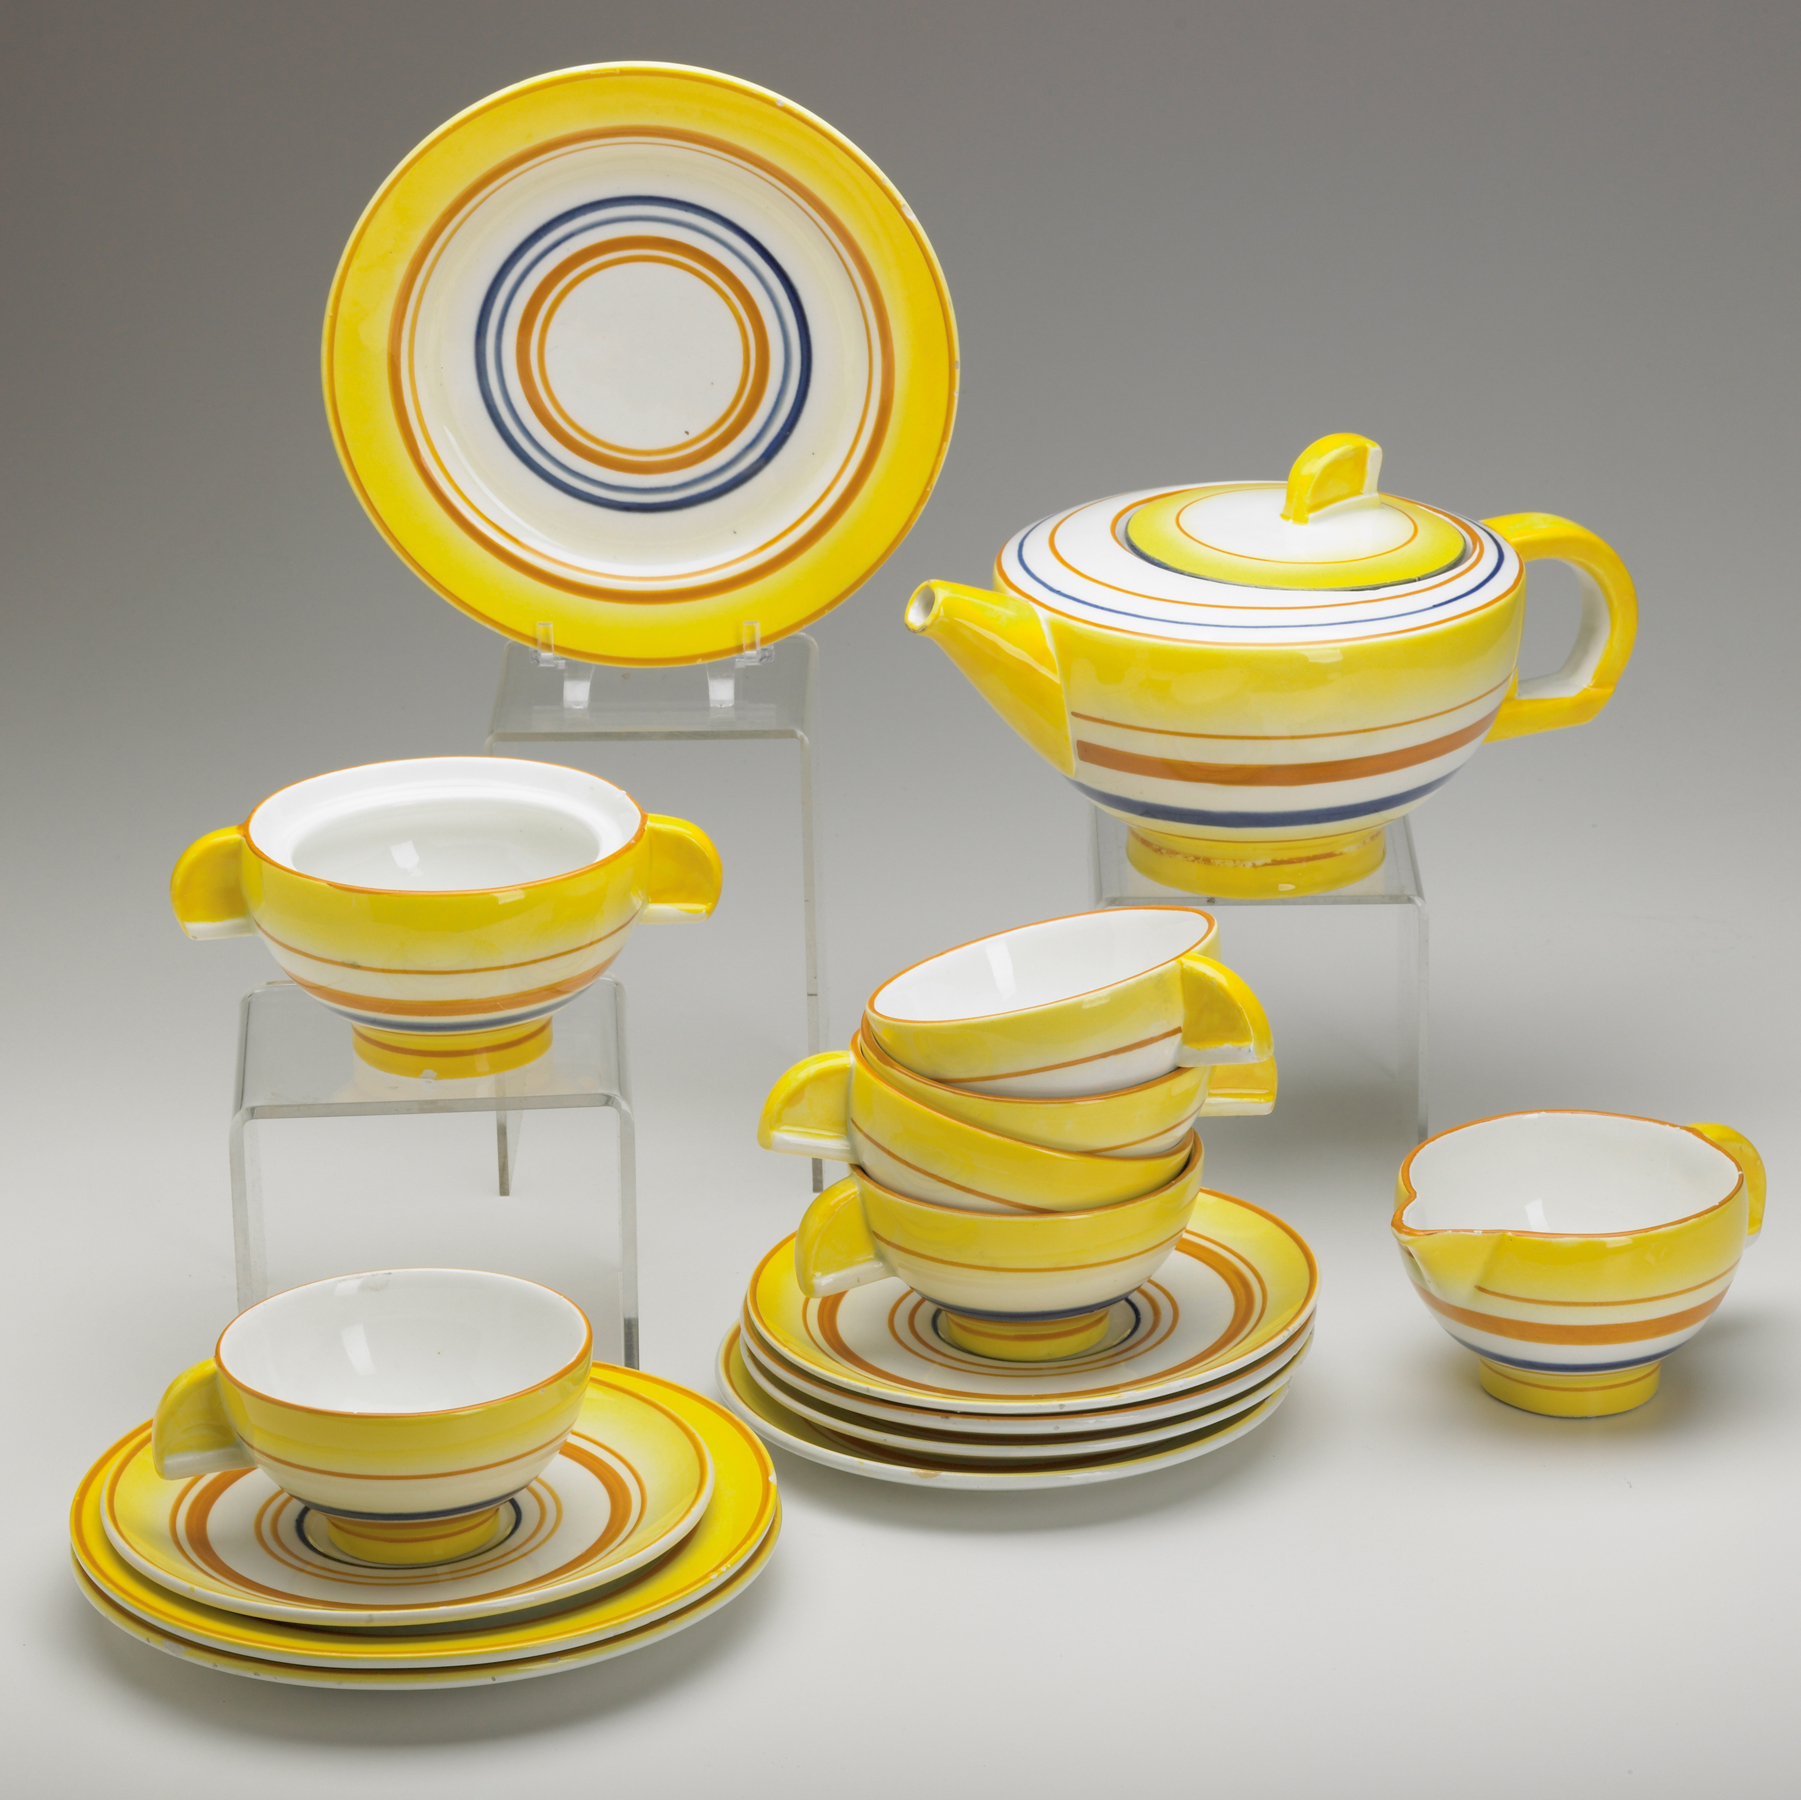 Faience 16-piece Tea Set made in Schramberg Germany early in Zeisel\u0027s & The Many Gifts of Eva Zeisel